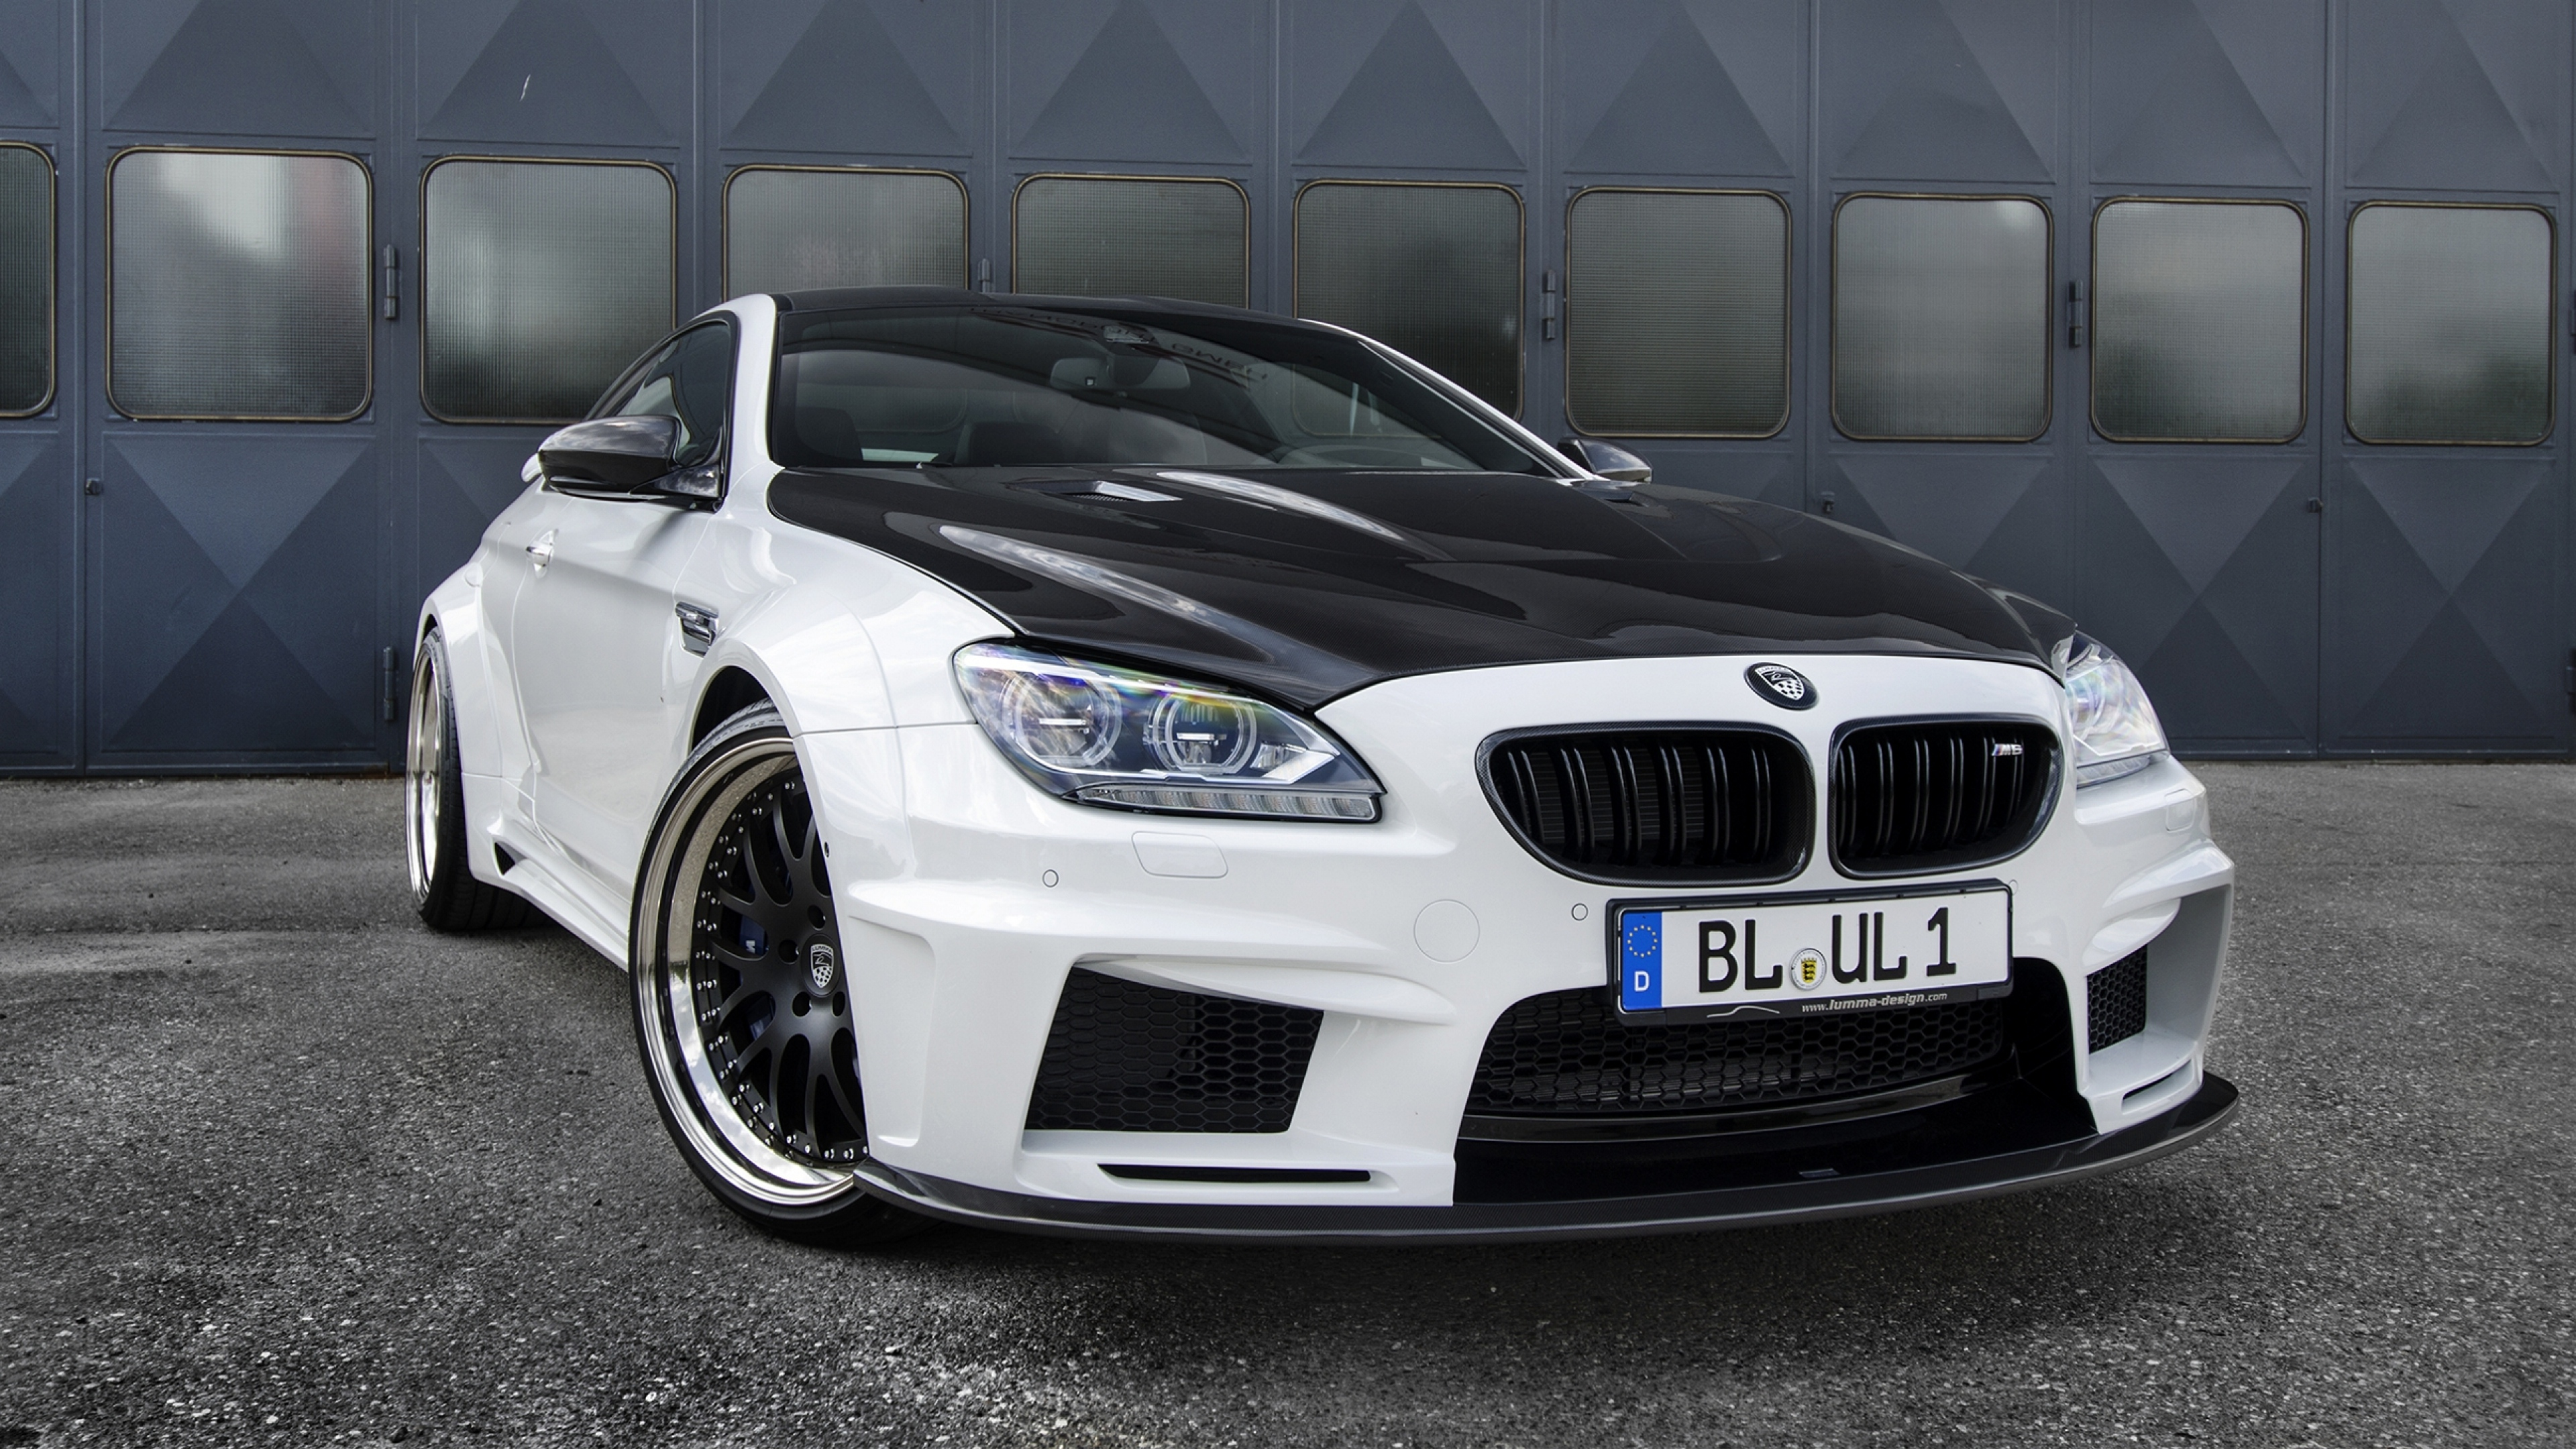 BMW M6, HD Cars, 4k Wallpapers, Images, Backgrounds ...